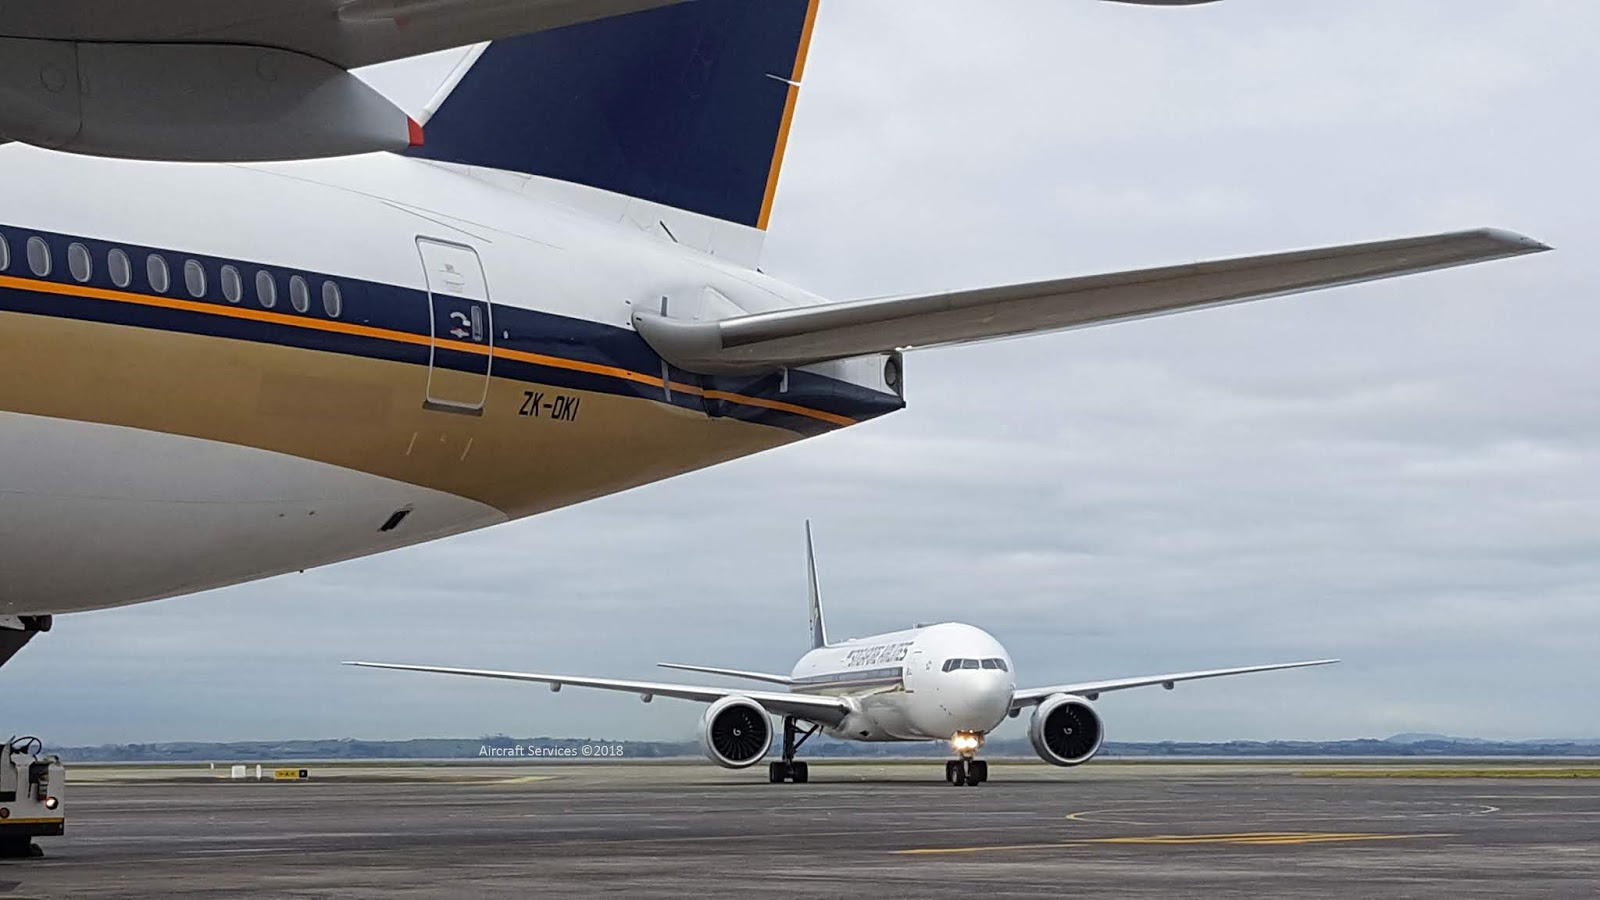 BOEING 777-200 ZK-OKI DELIVERED - UPDATED 07 JULY 2018   Article